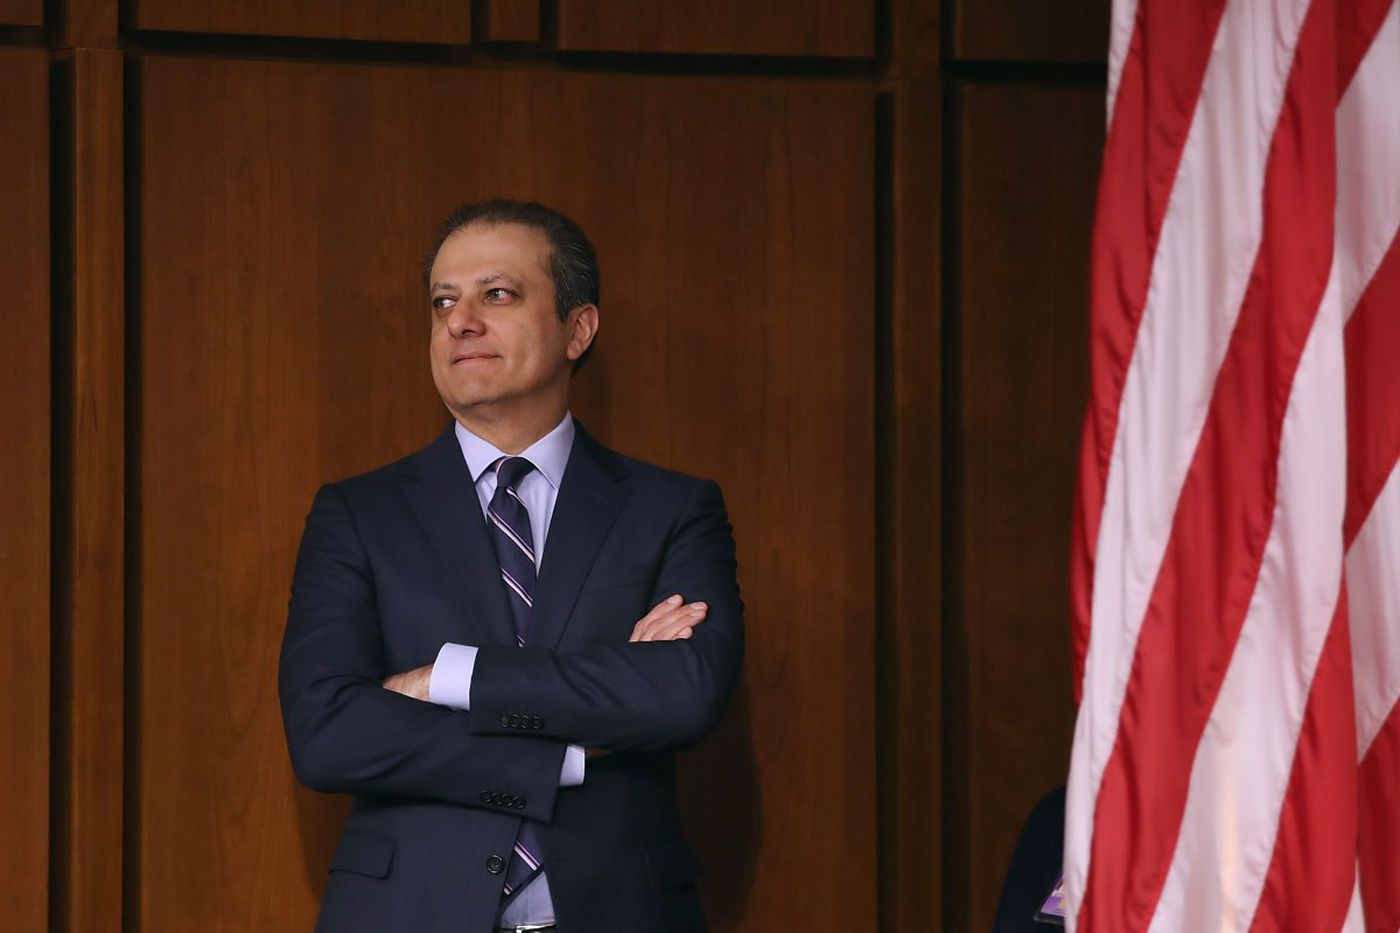 Former Manhattan U.S. Attorney @PreetBharara hasn't been registered to vote since 2006 https://t.co/jtkhQHjqKf https://t.co/6tGu34D3mB